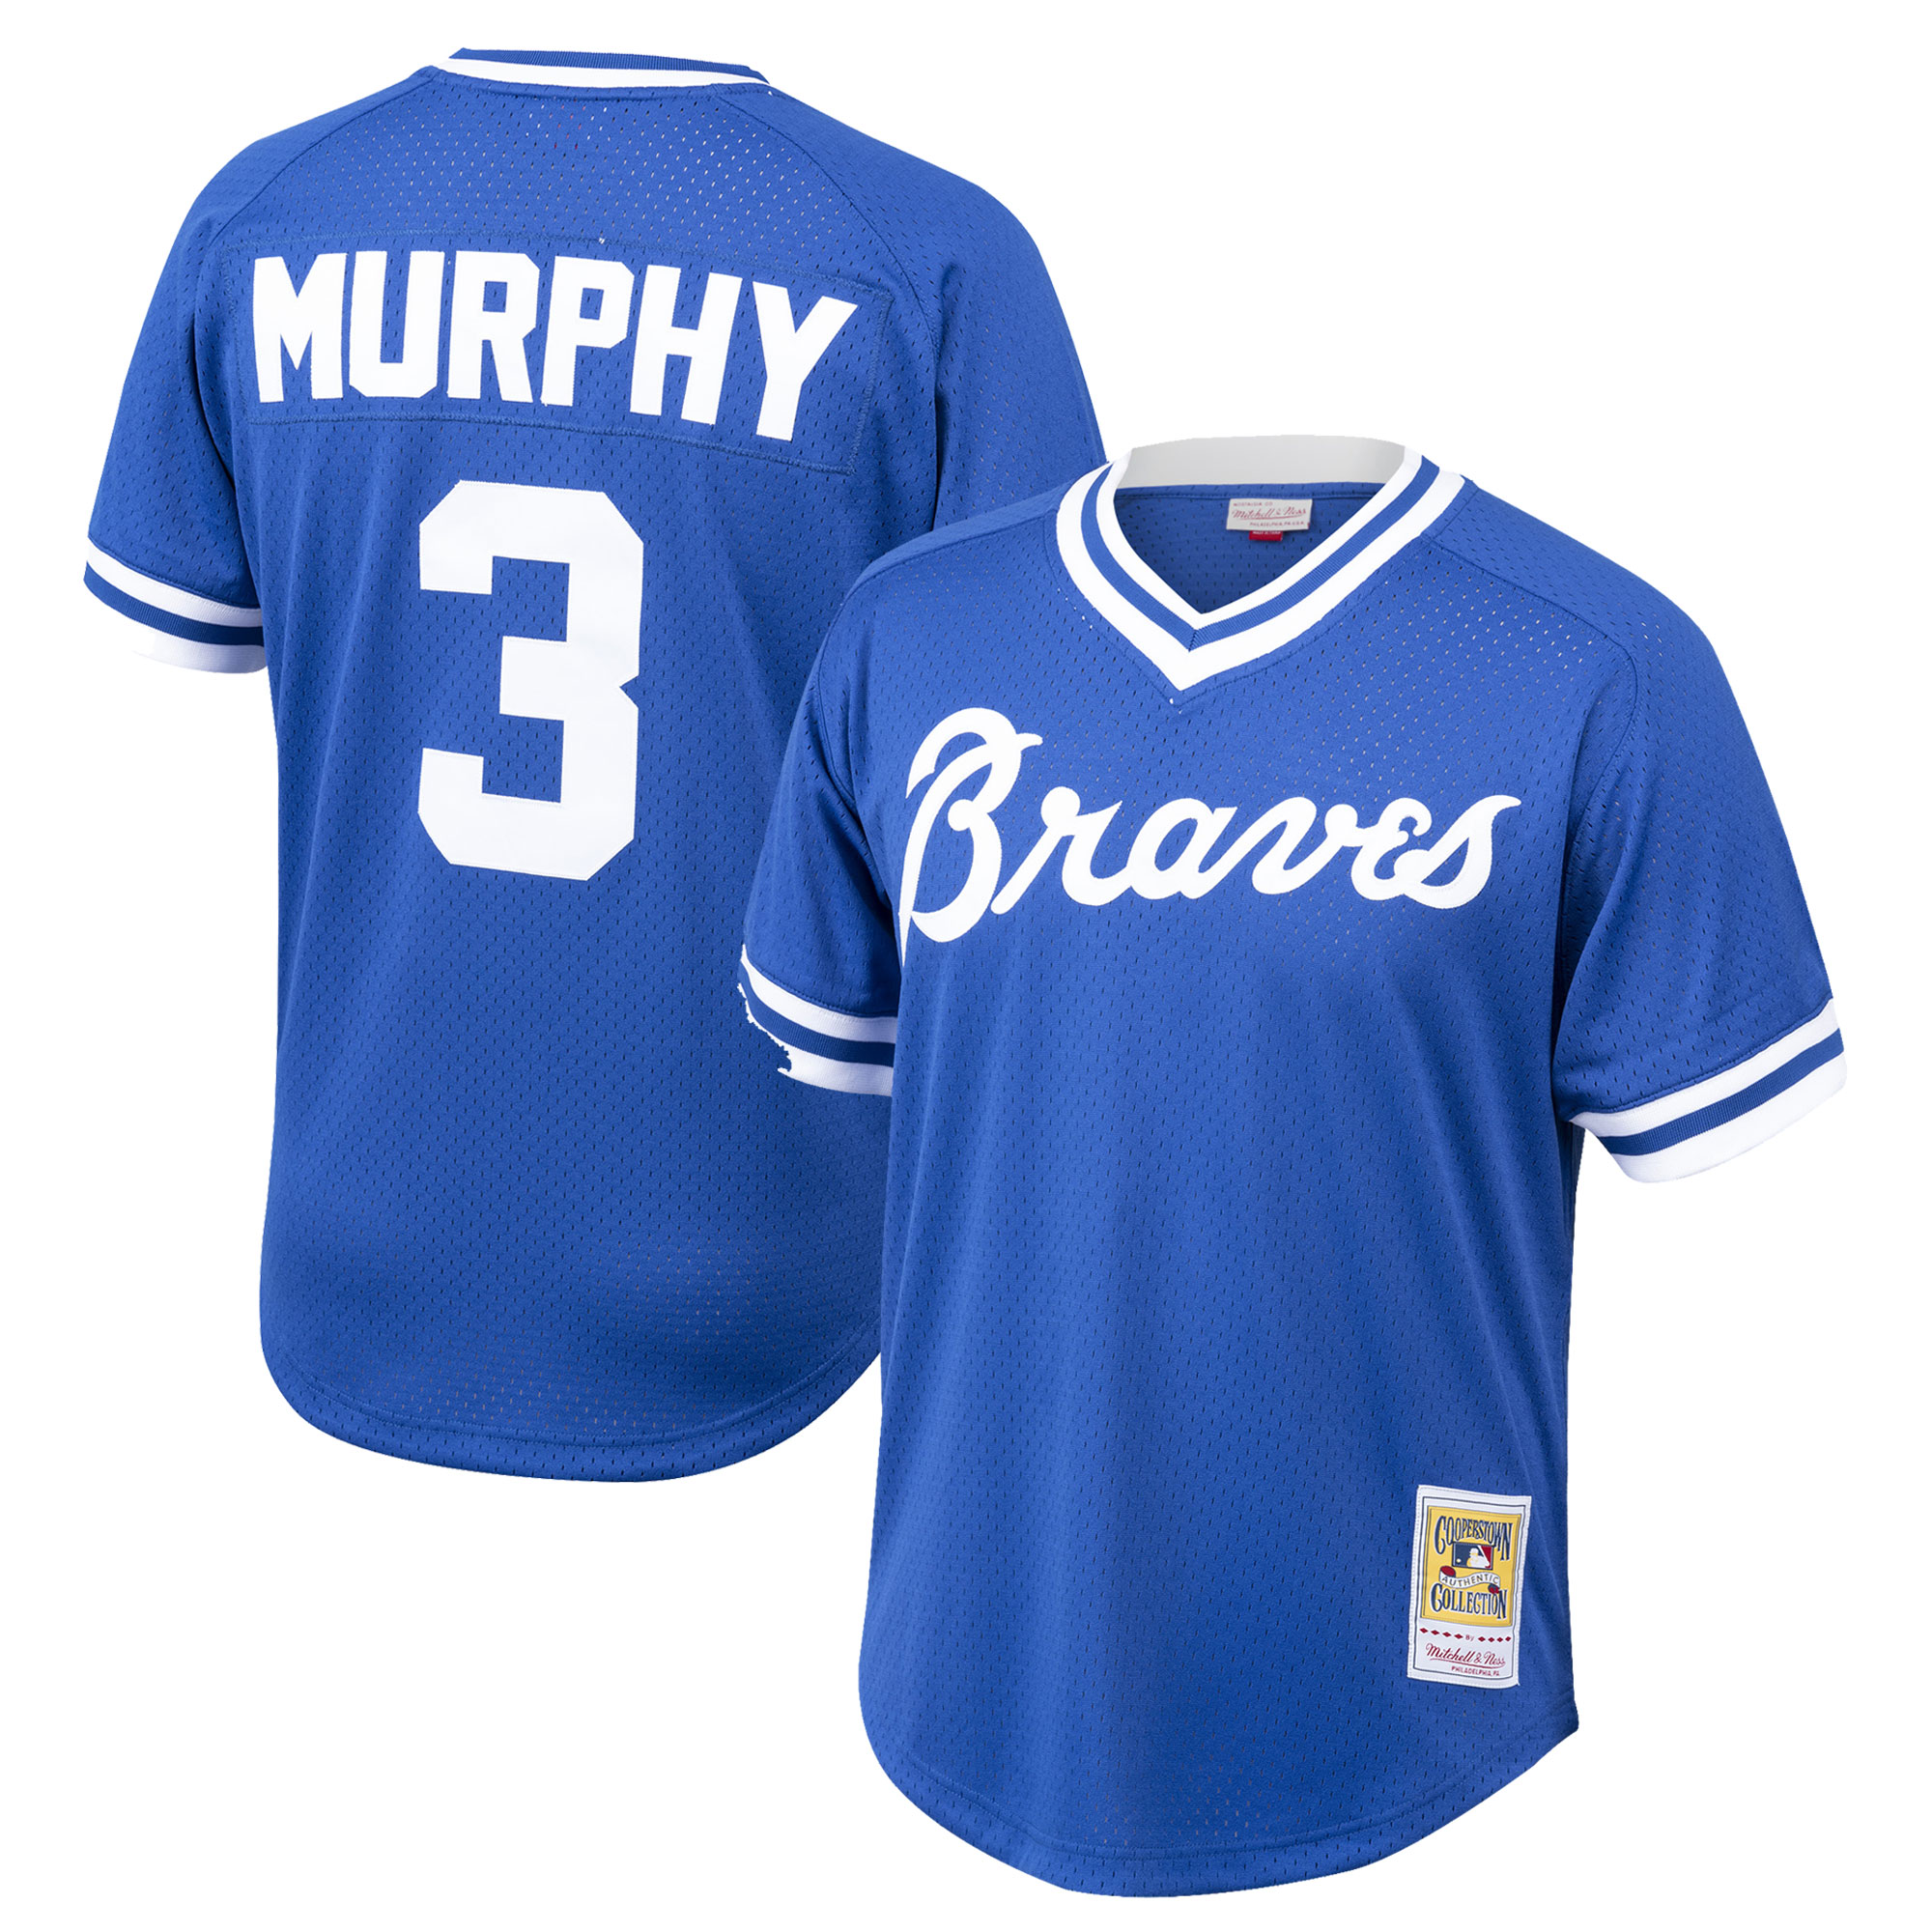 Dale Murphy Atlanta Braves Mitchell & Ness Youth Cooperstown Collection Mesh Batting Practice Jersey - Royal